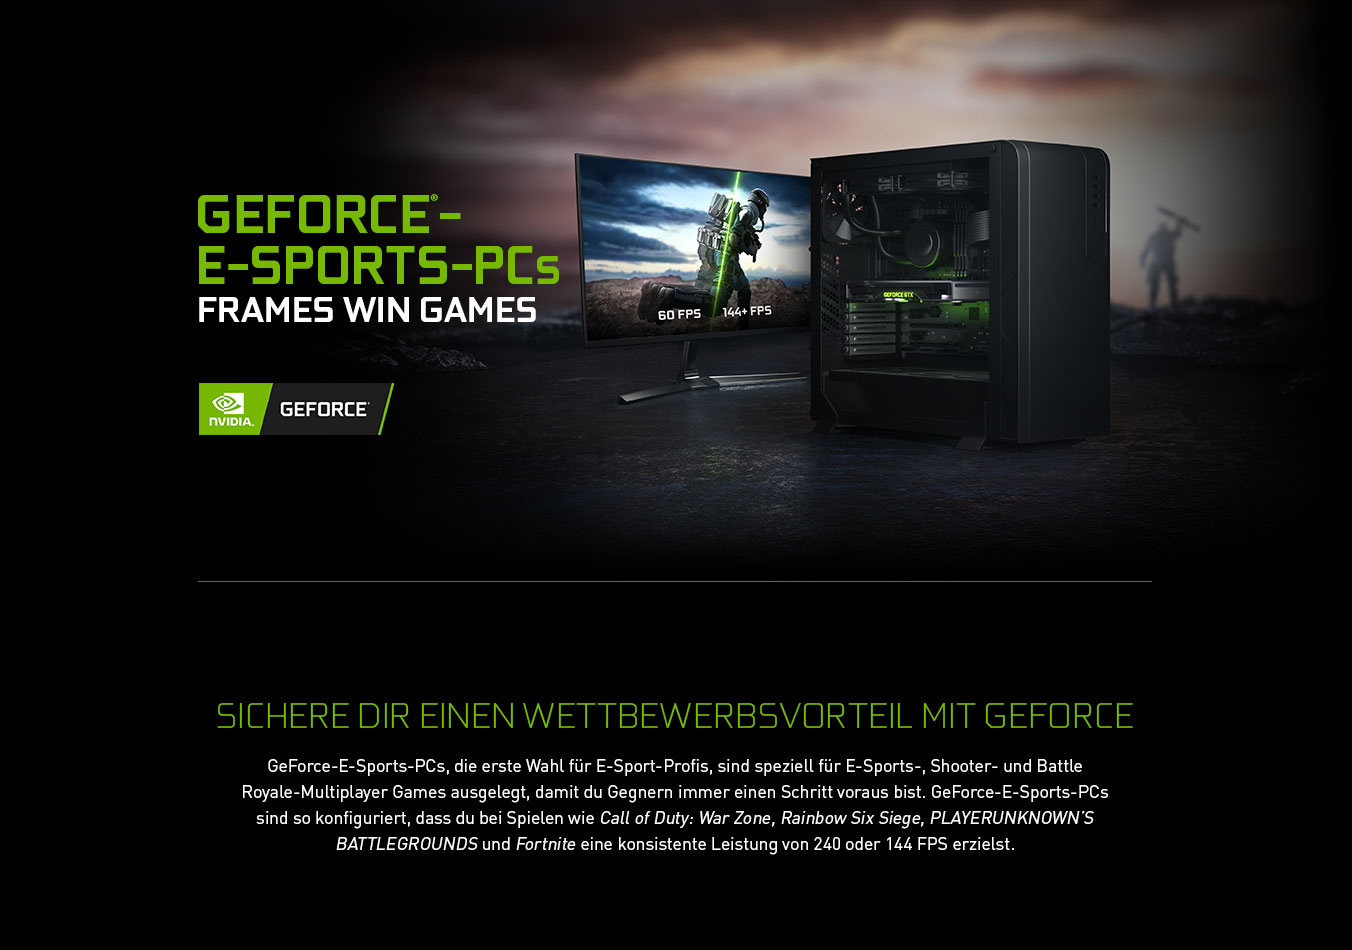 GeForce®-E-SPORTS-PCs